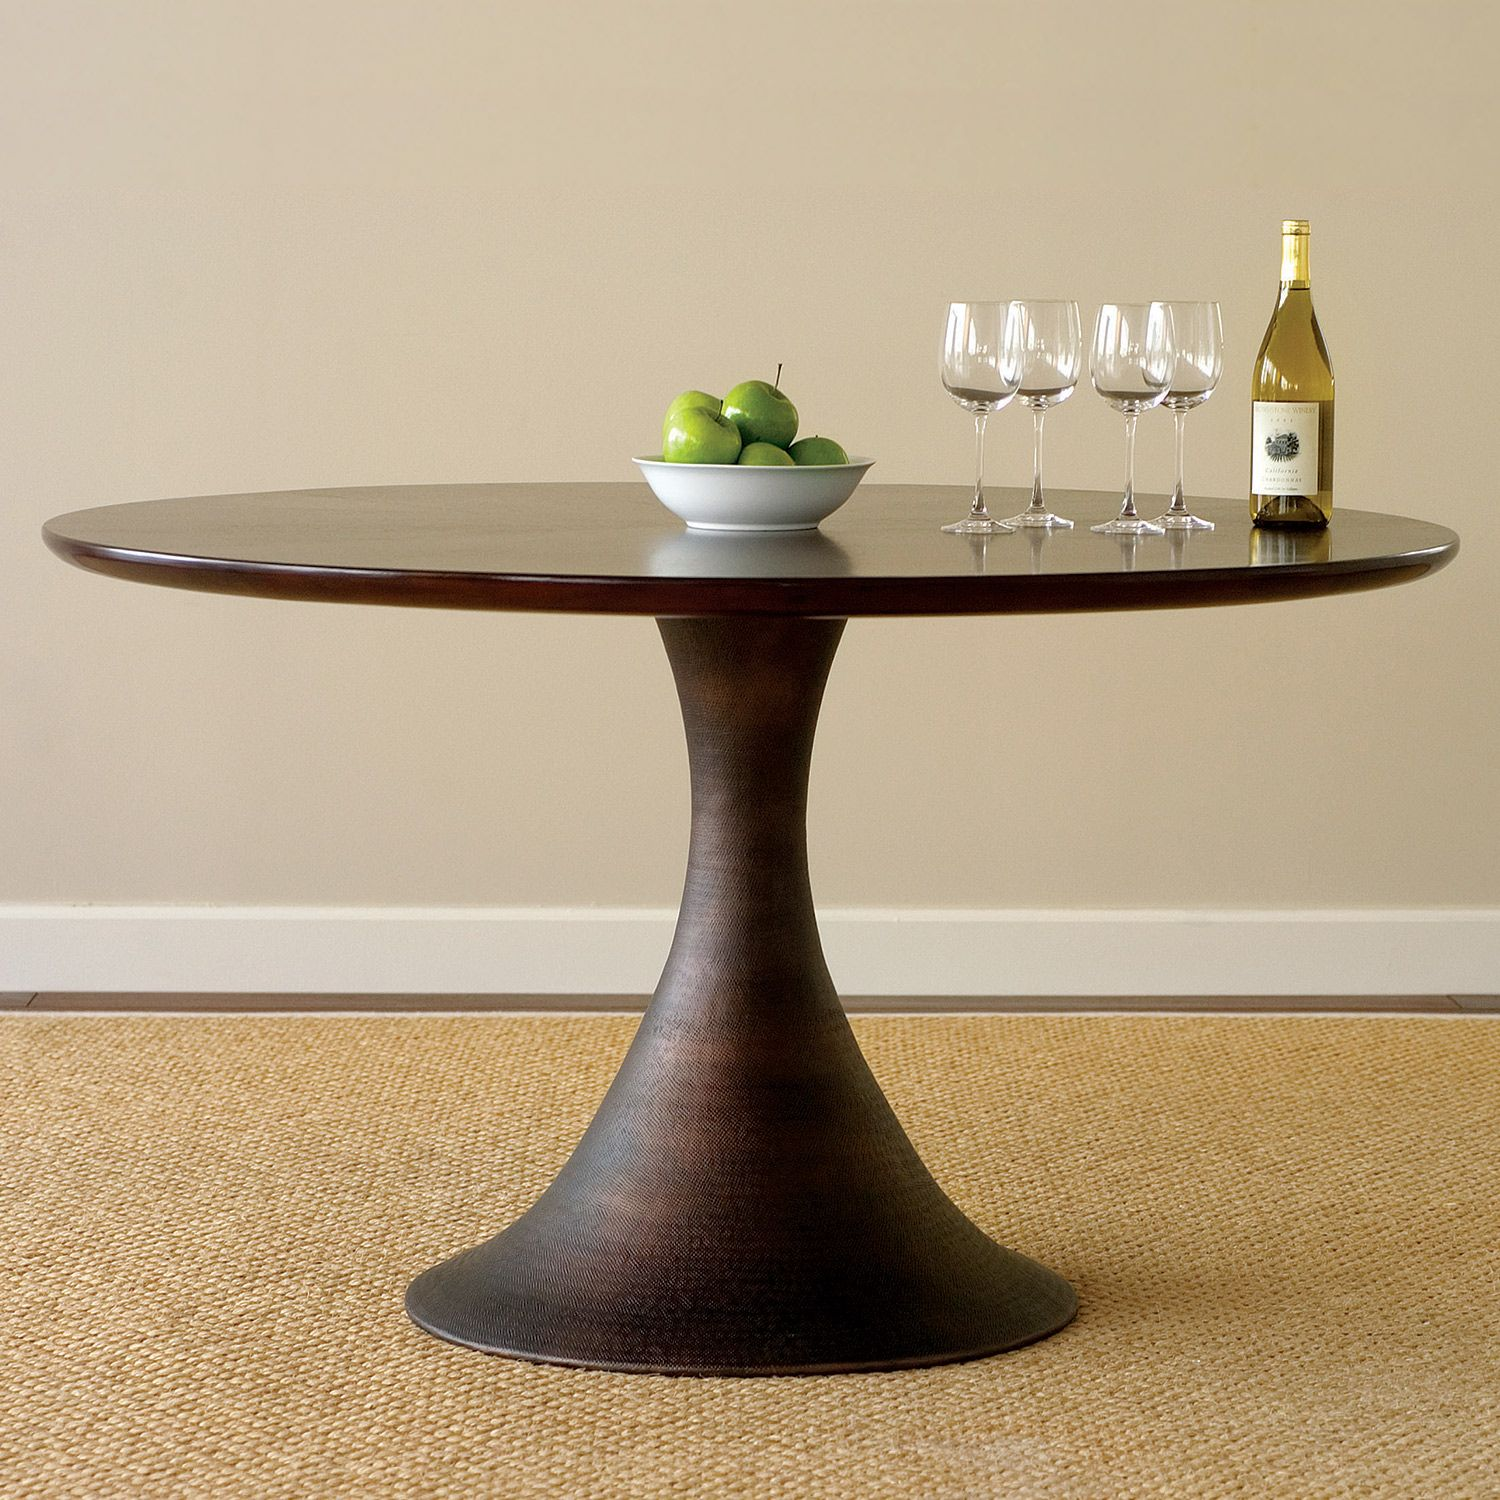 Modern Round Pedestal Dining Table Modern Round Wood Dining Table, Modern  Round Table, Kitchen